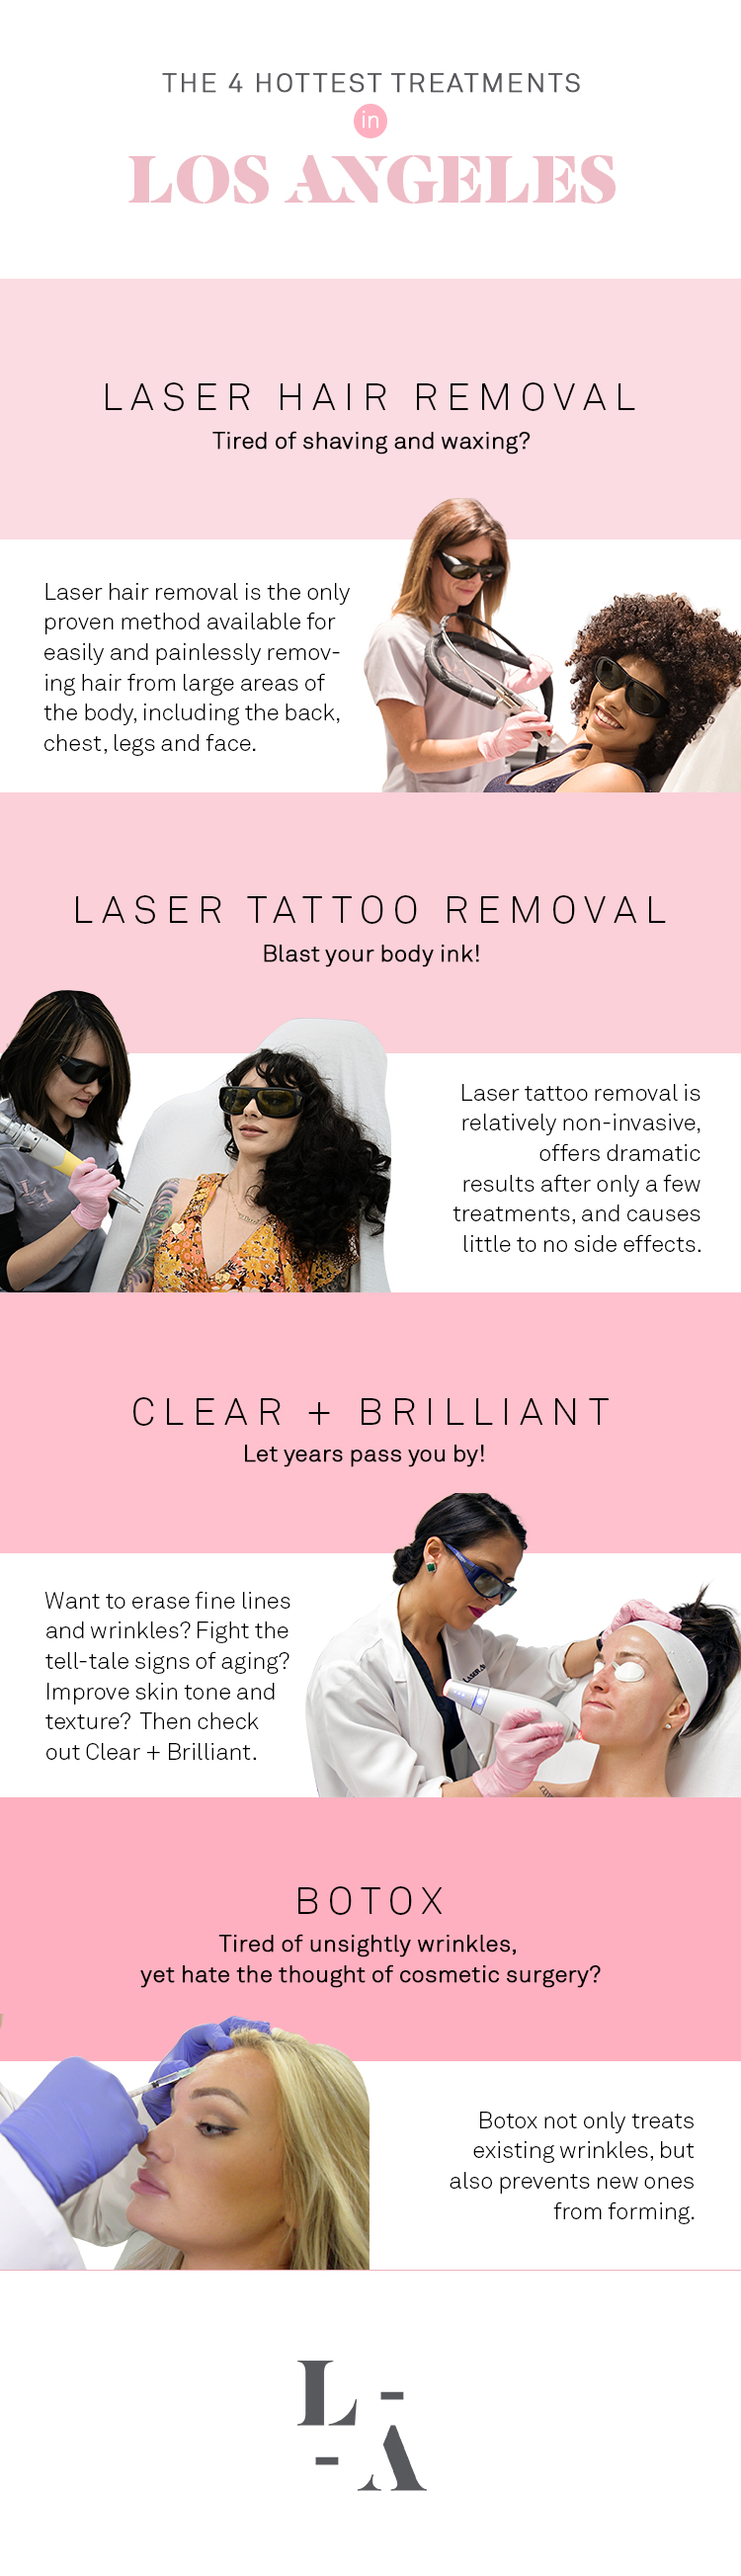 The 4 Hottest Treatments In Los Angeles Laseraway Laser Hair Removal Fine Wrinkles